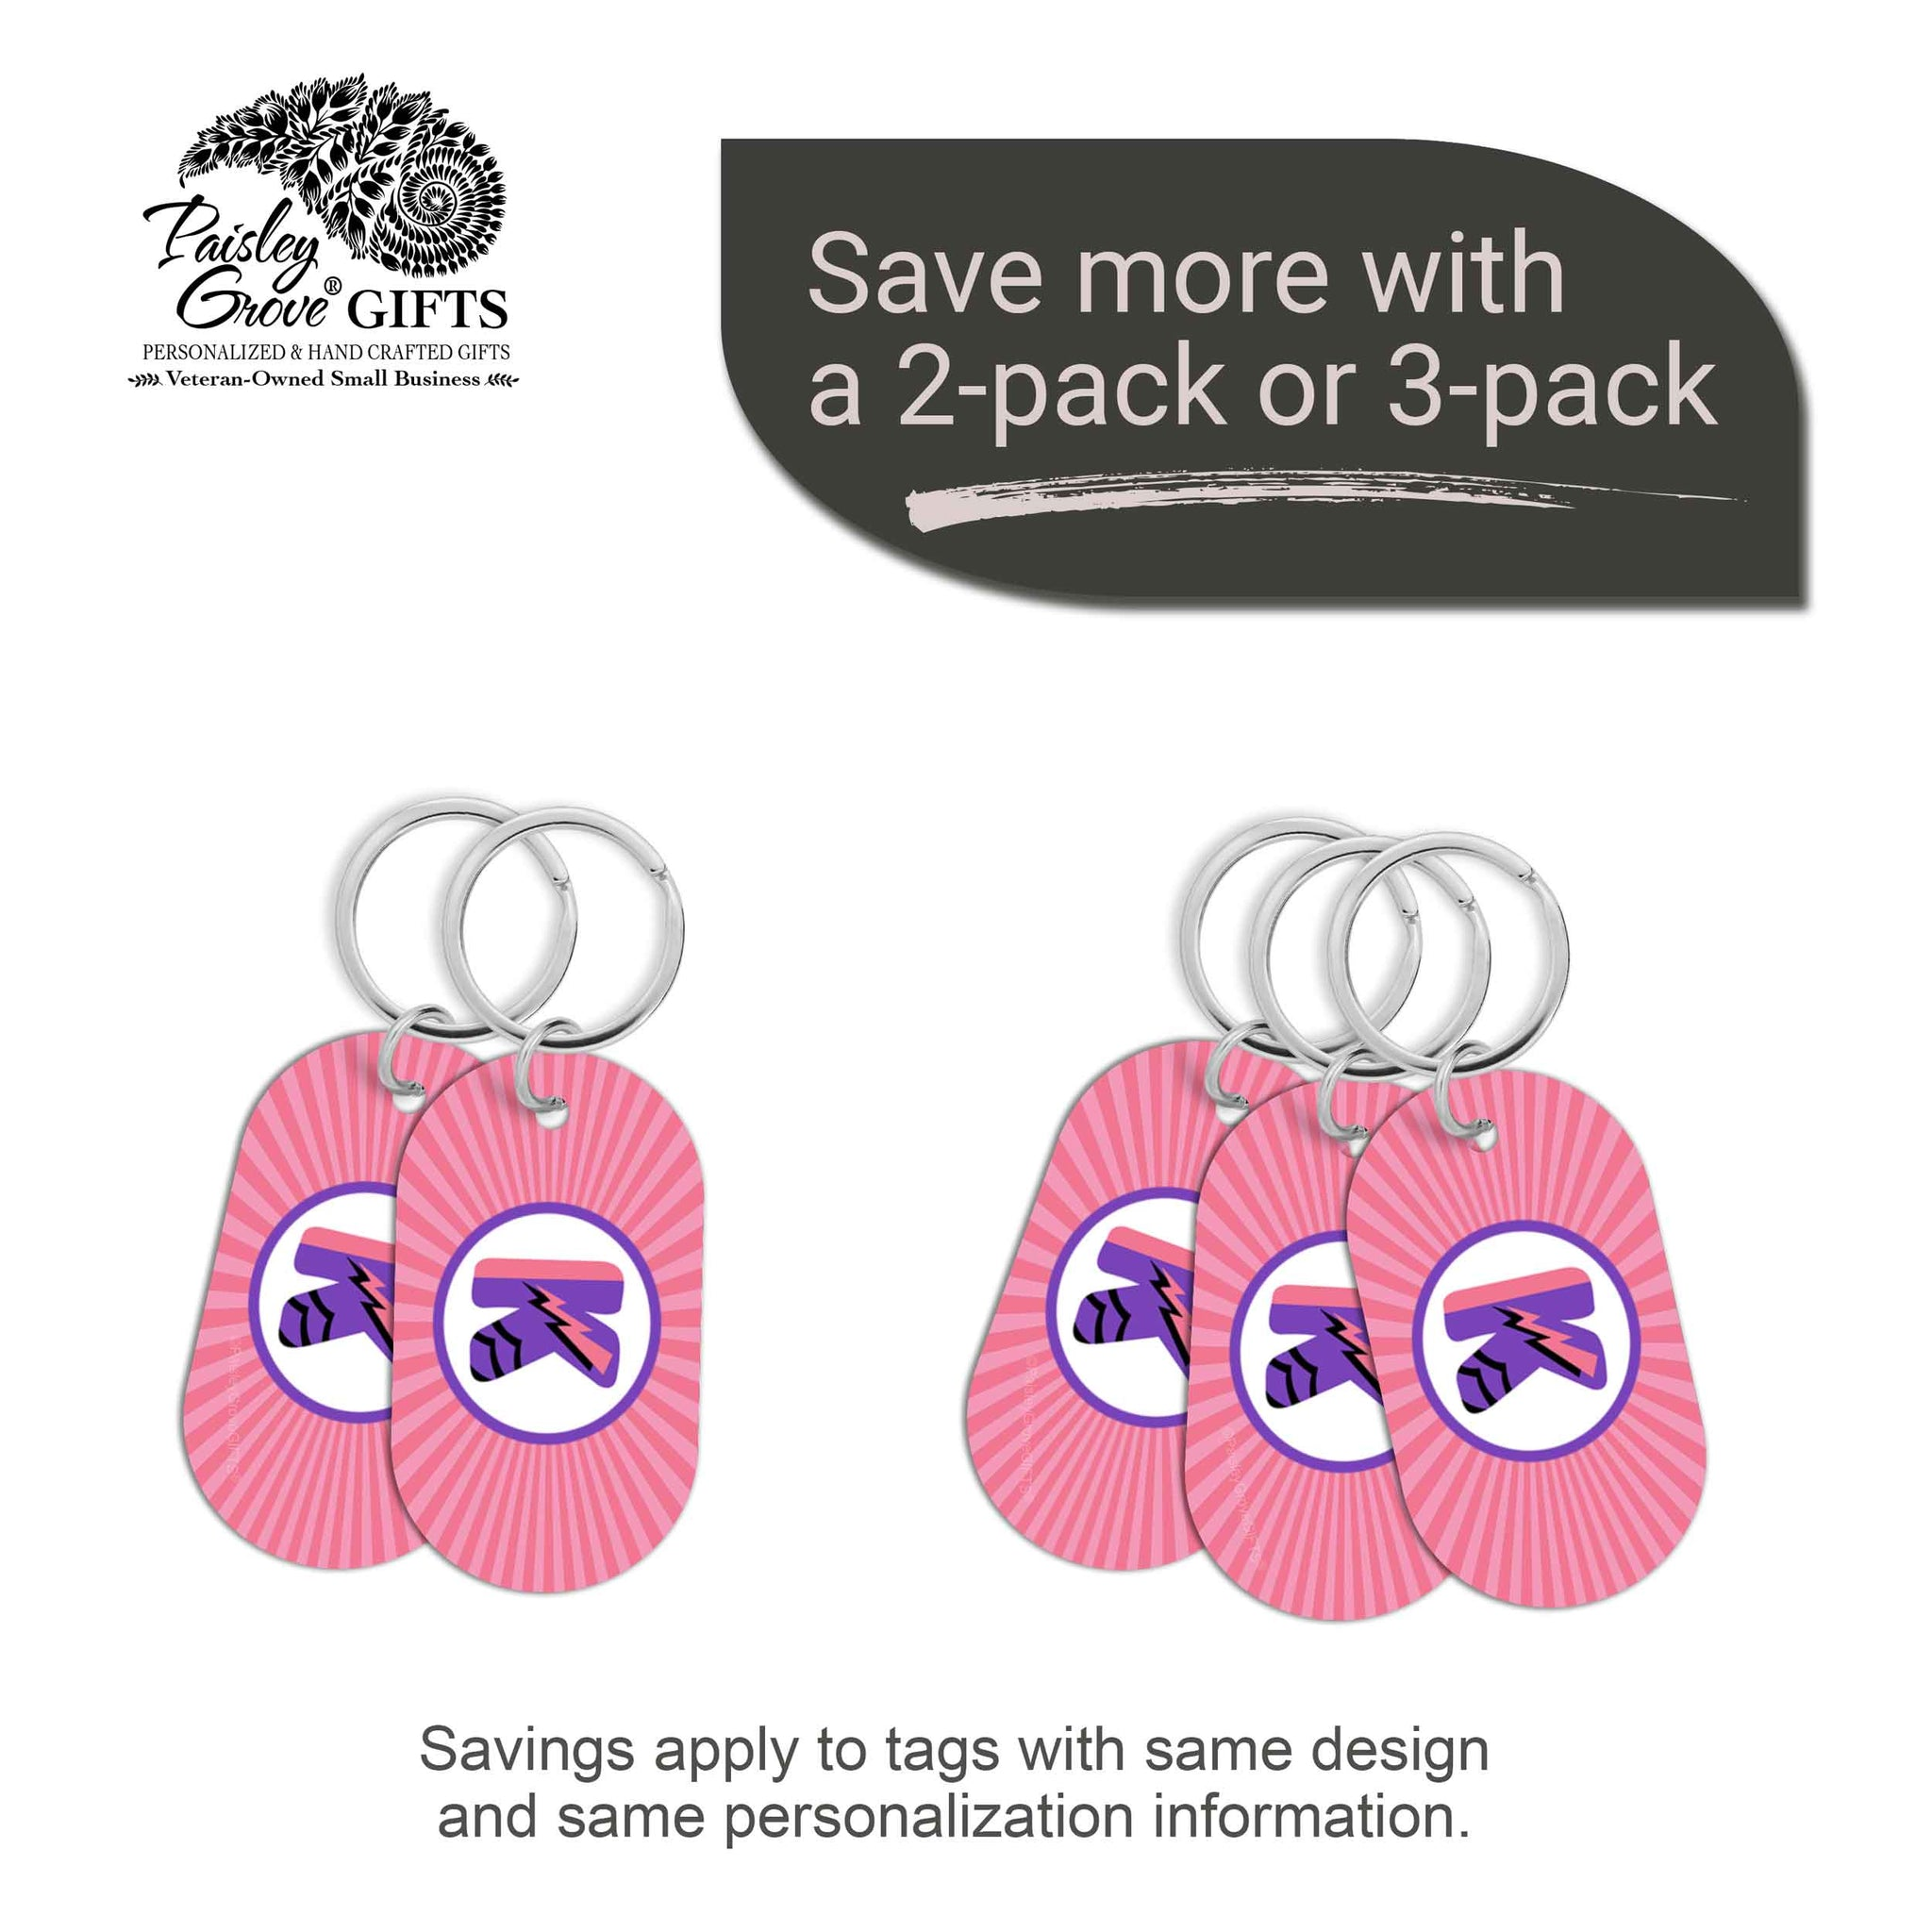 CopyrightPaisleyGroveGIFTS S070b5 Personalized bag ID tags for luggage or bags 2 or 3 pack option savings